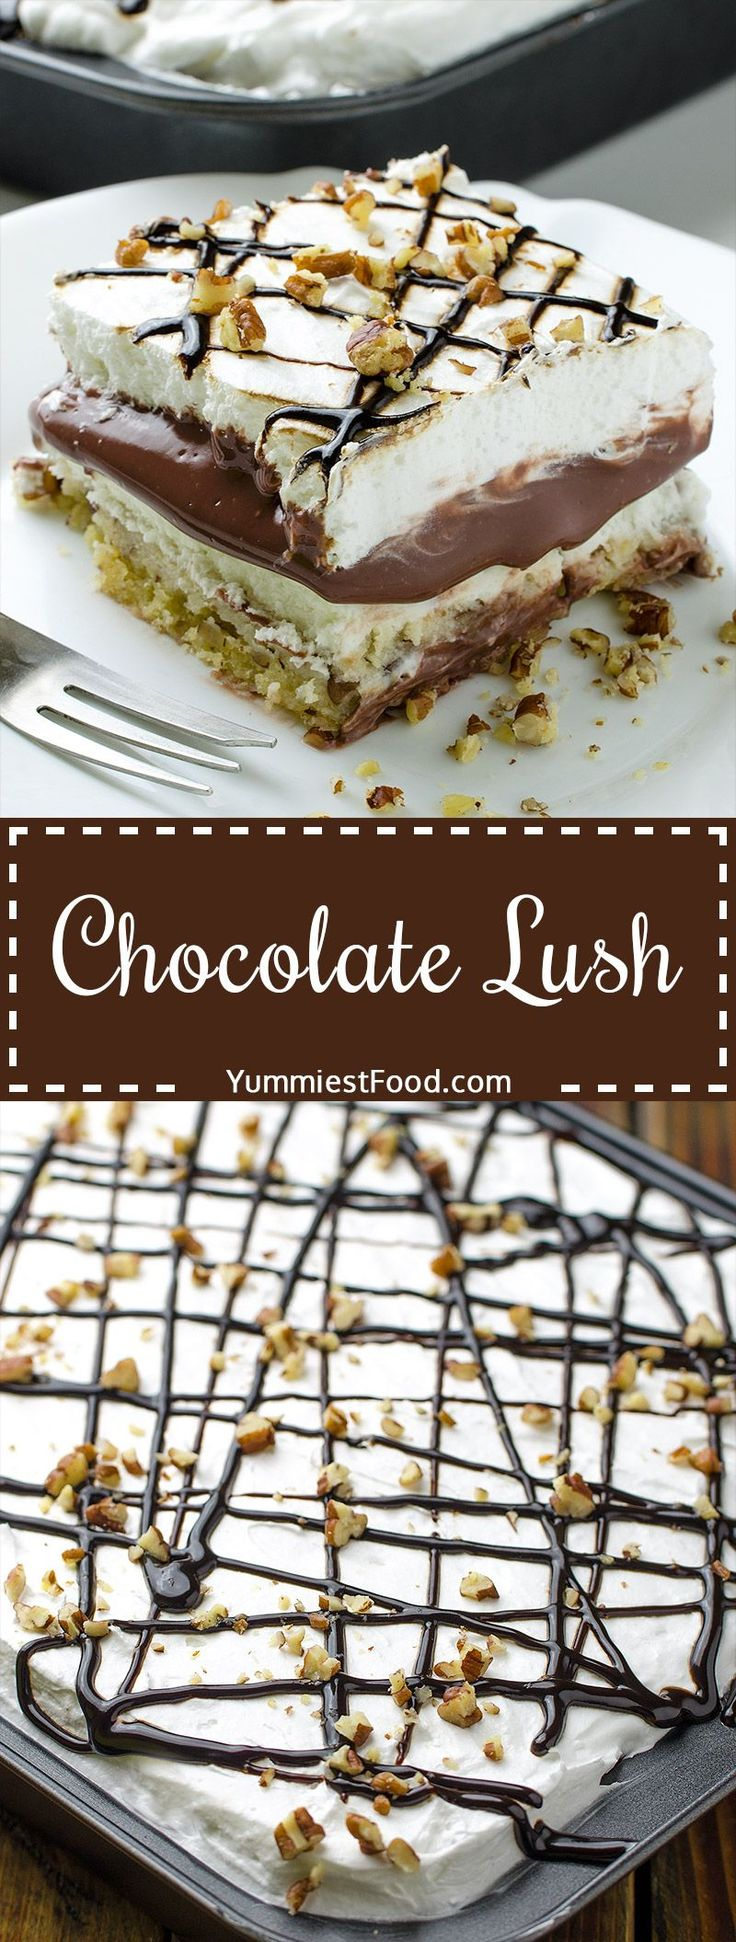 Chocolate Lush - perfect combination of cream cheese, cool whip and pecans! This recipe is very easy to make and it is so delicious! Layer after layer of chocolate fantasy - Chocolate Lush!